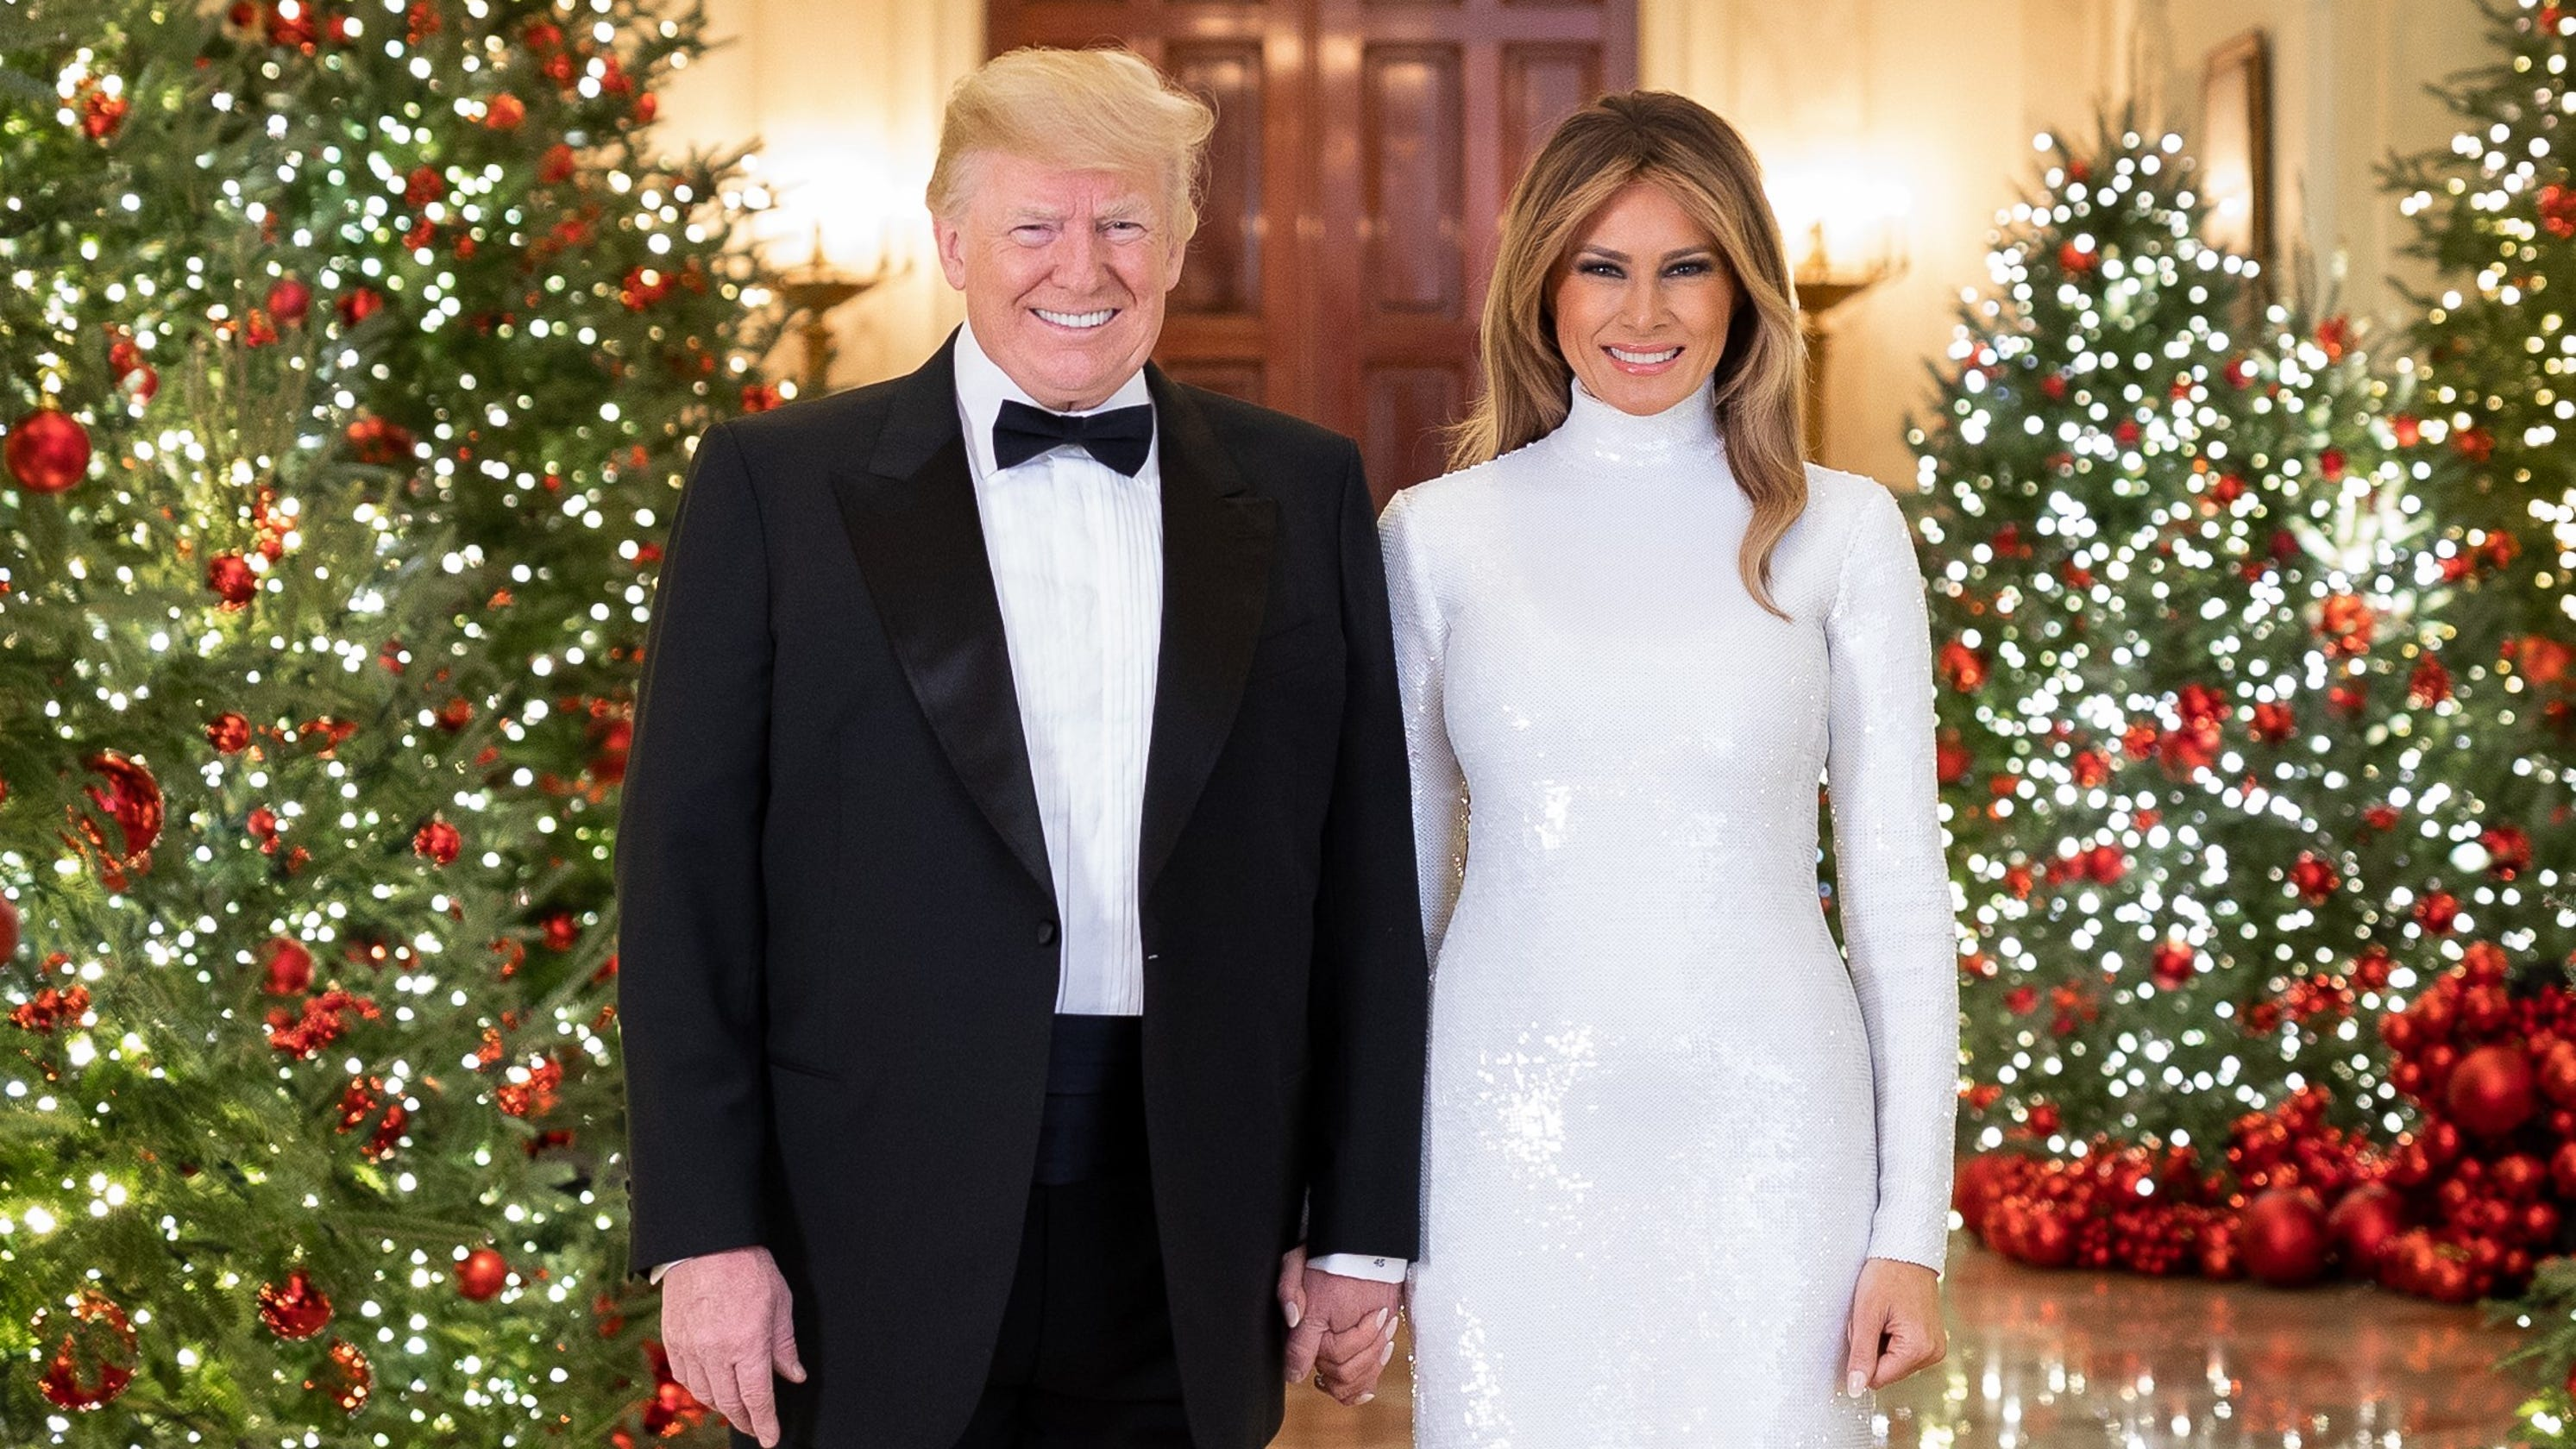 Melania Trump White House Christmas.Donald Trump Melania Hold Hands In Official Christmas Portrait